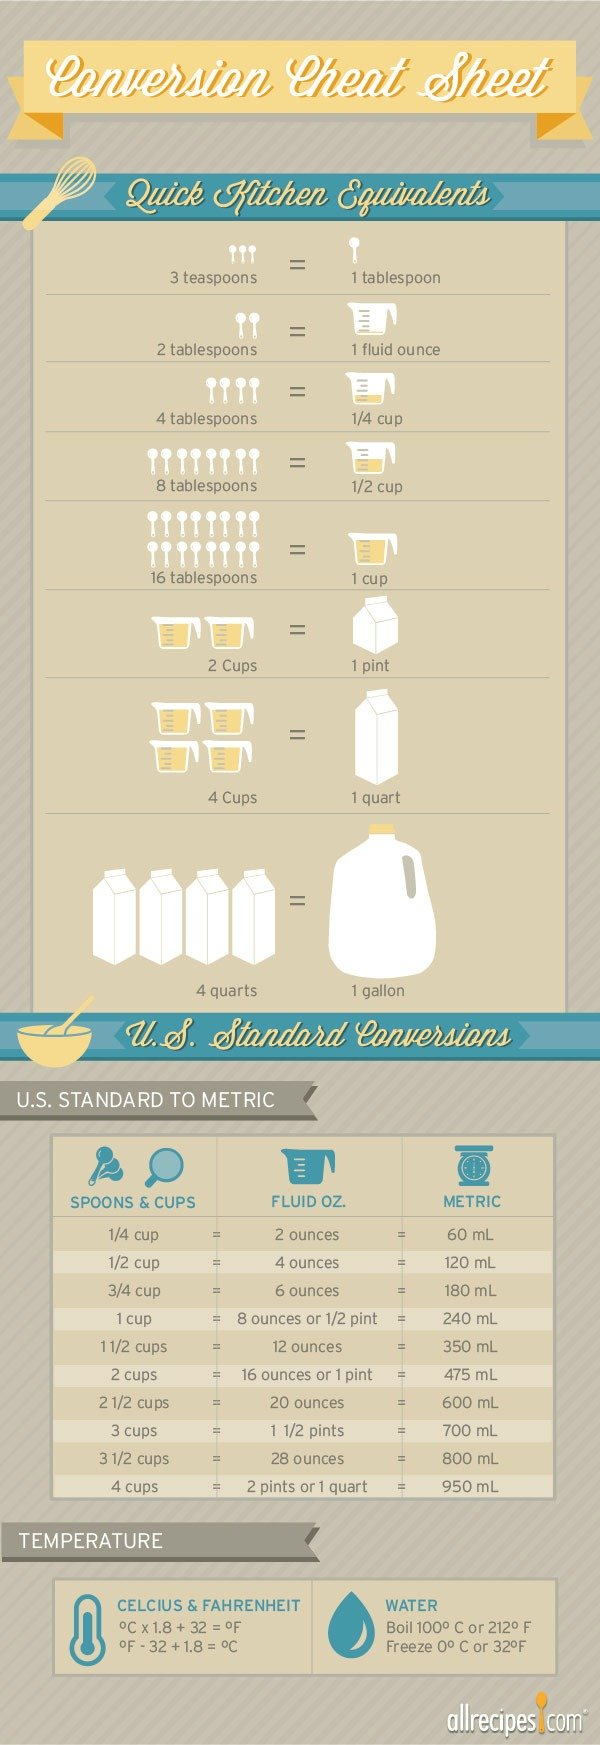 Conversion_kitchen equivalents_Cheat_Sheet_03Final